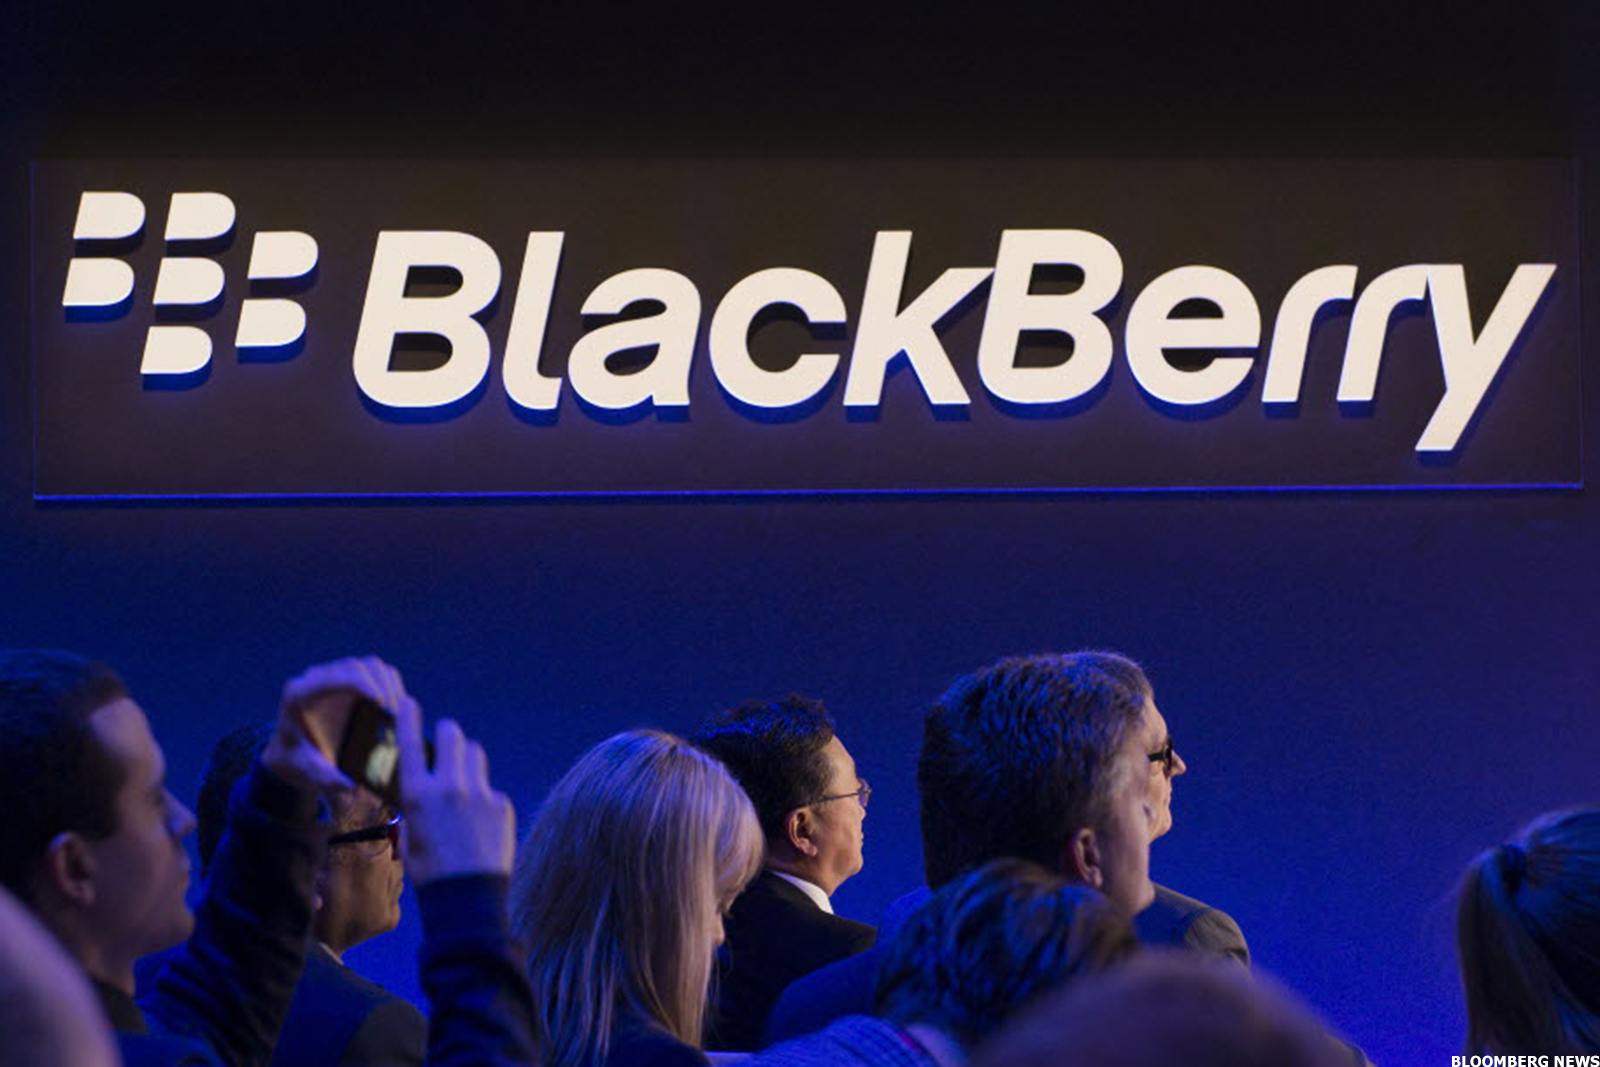 Blackberry Discusses Plan to Layoff More Employees